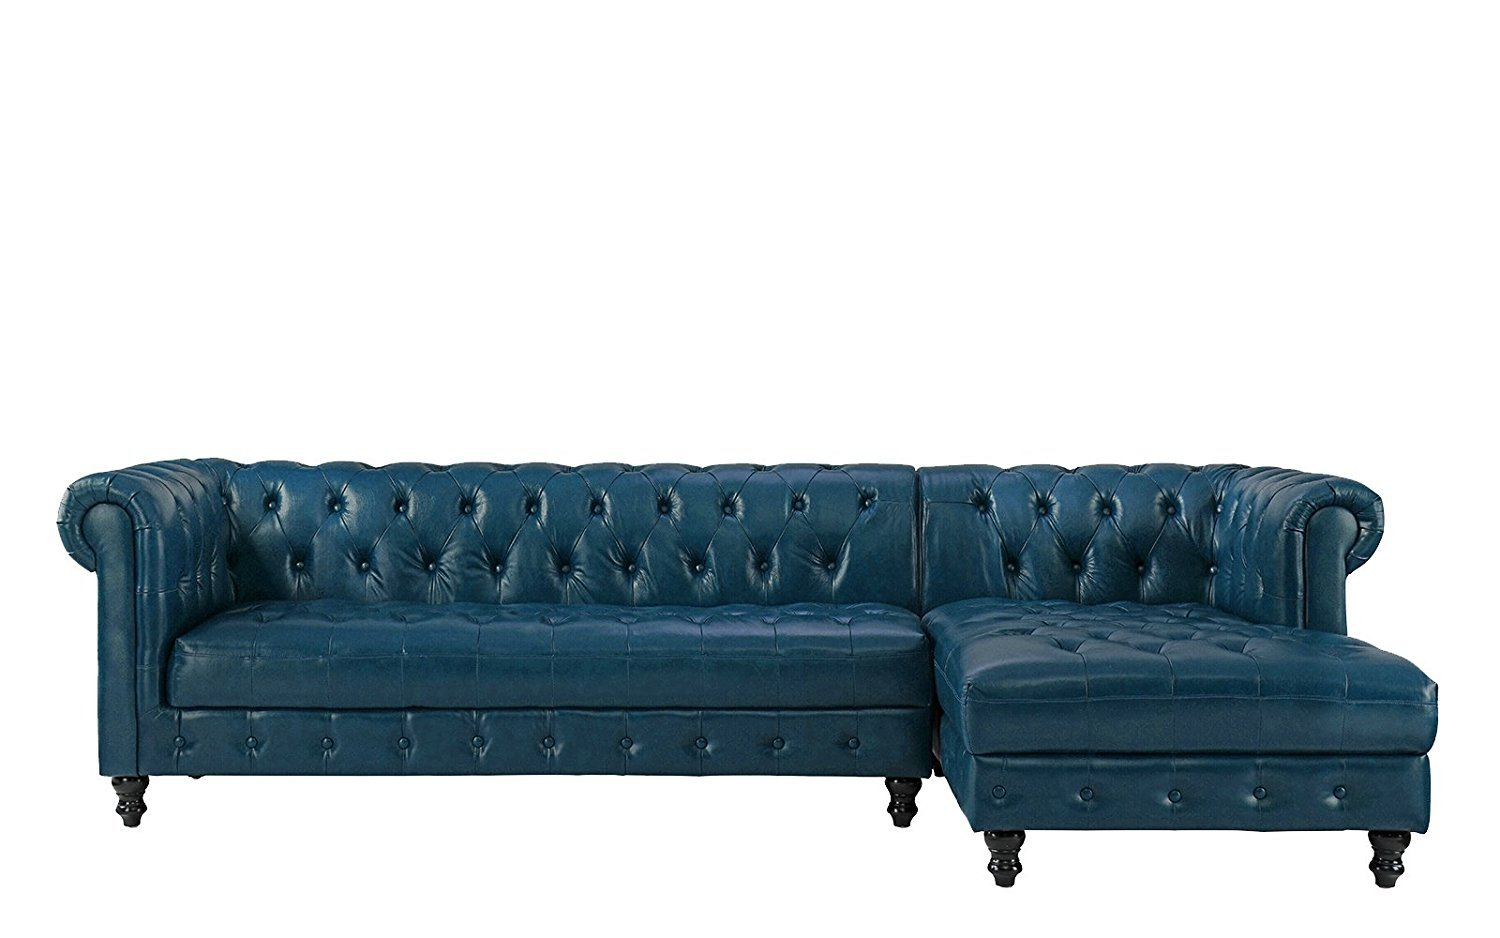 Chesterfield Sectional Sofa Details About Classic Tufted Leather Chesterfield L Shape Sectional Sofa Right Chaise Blue